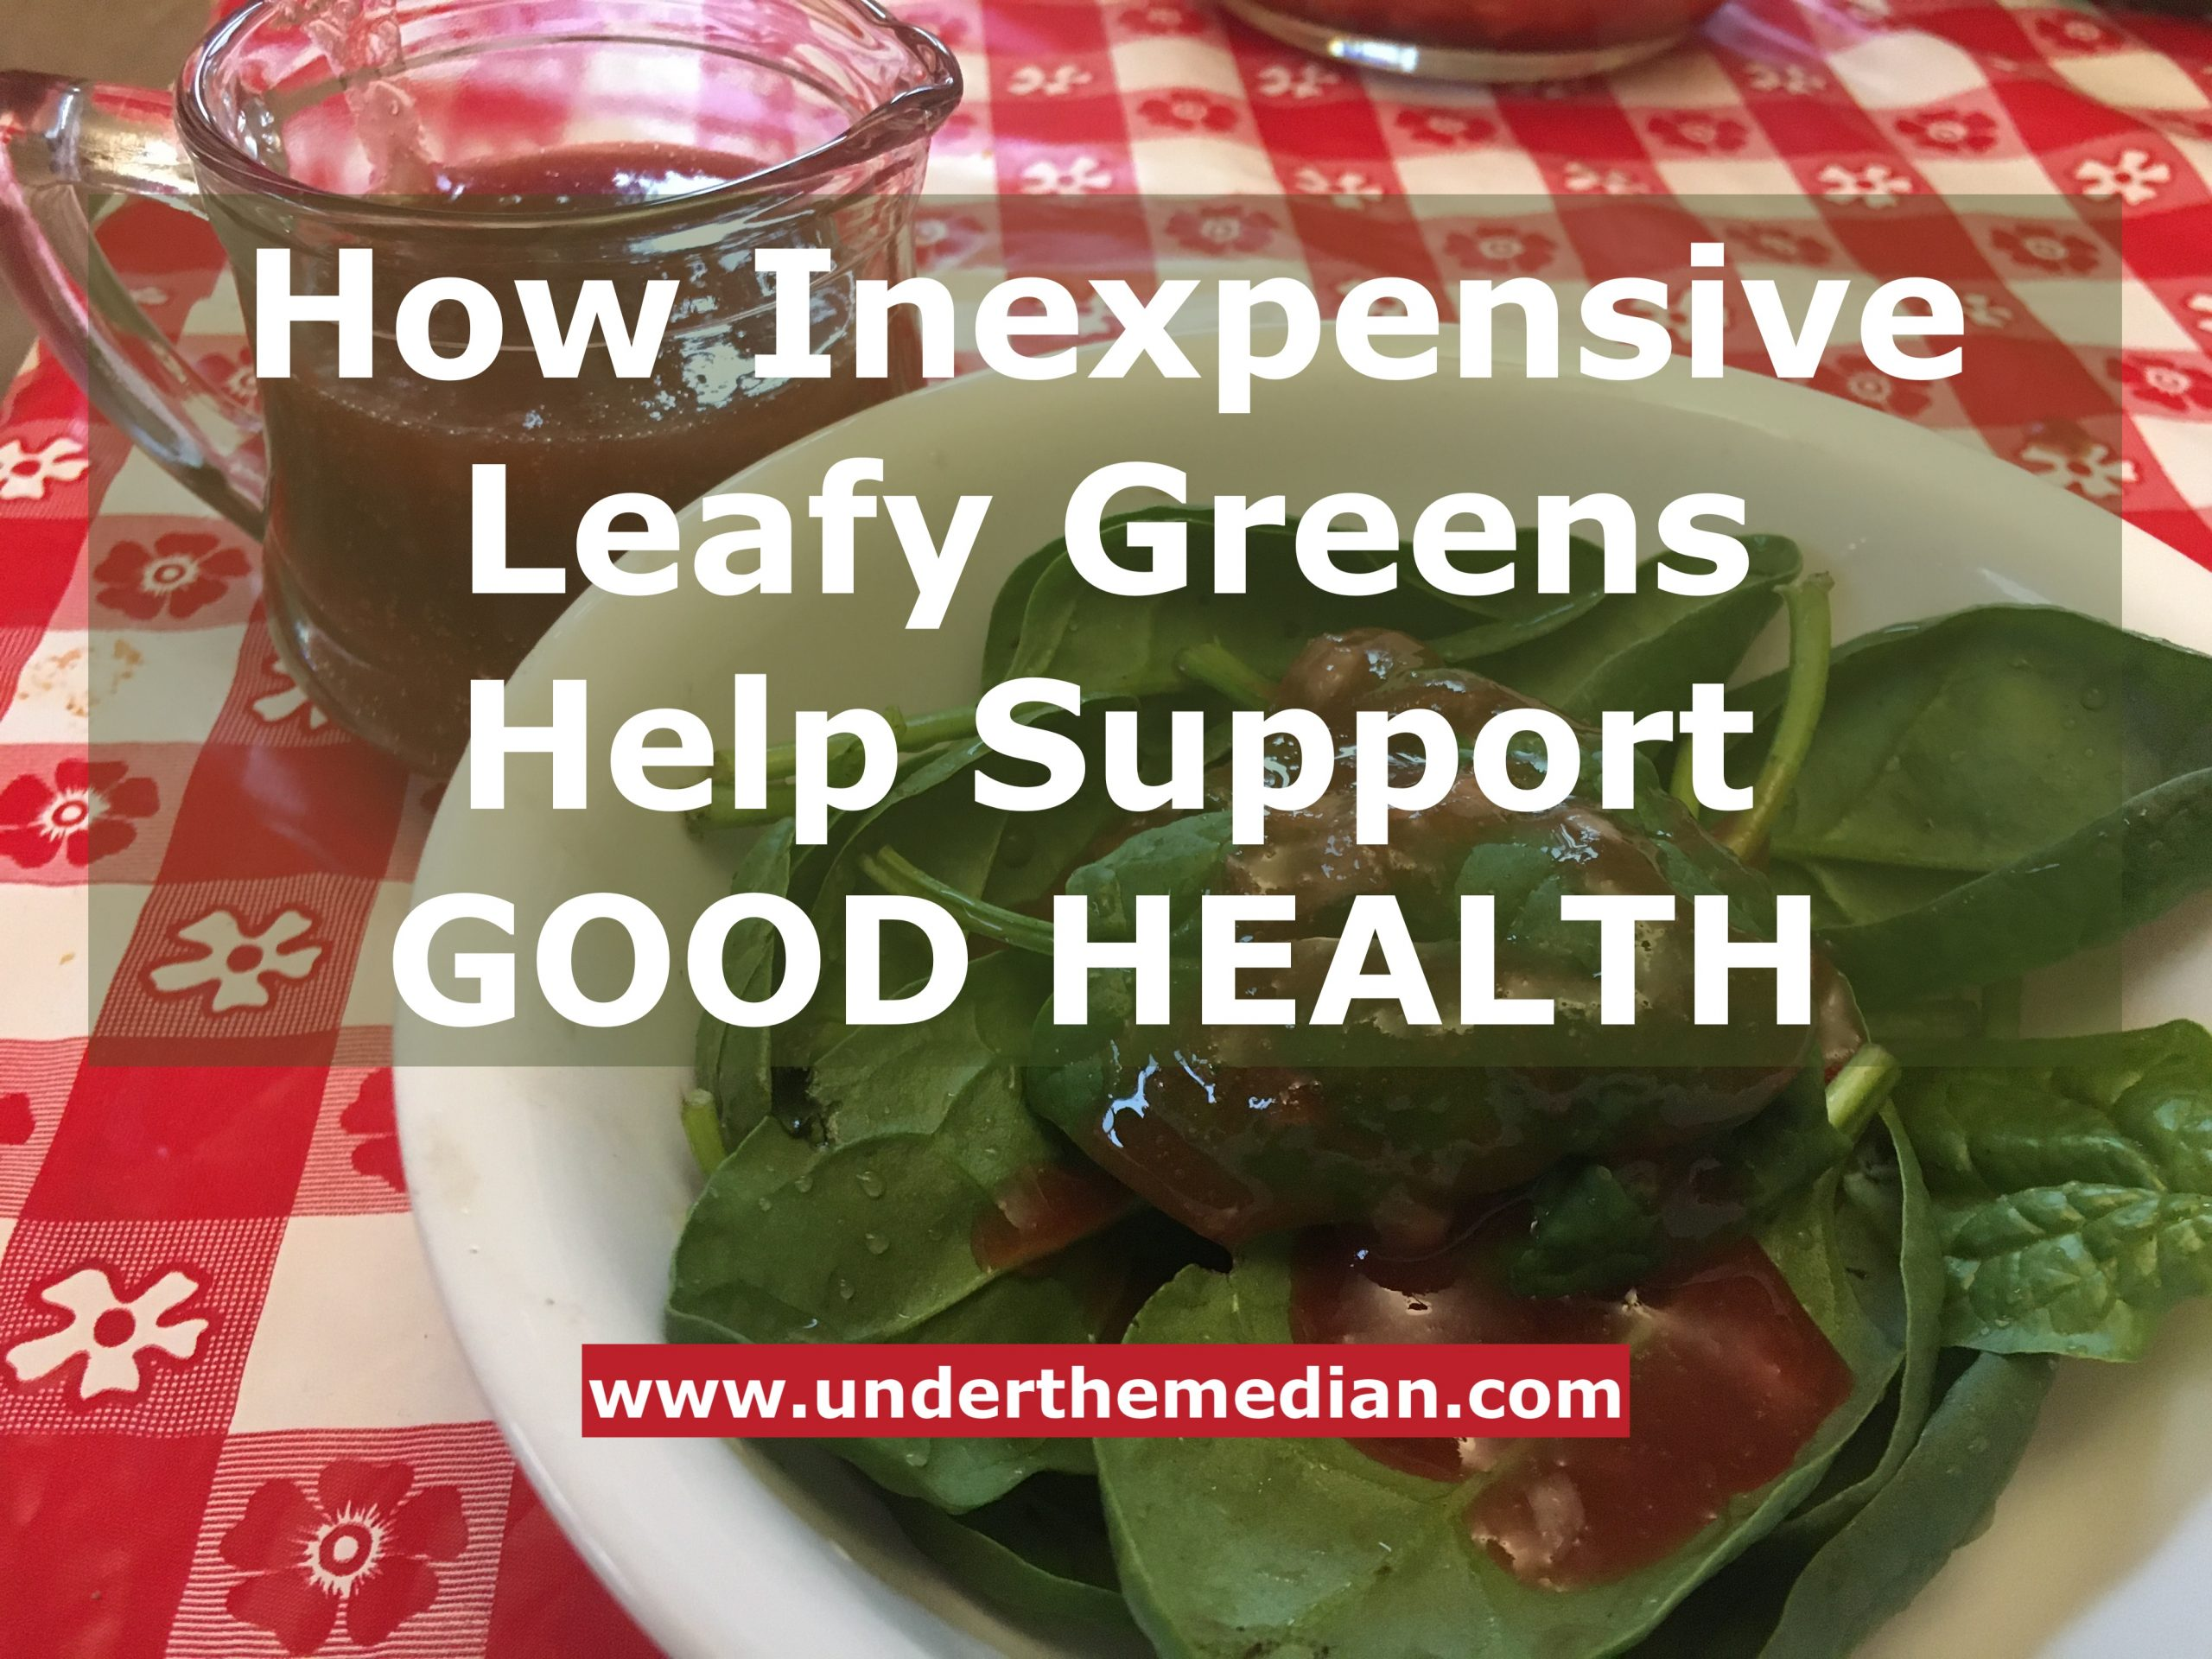 How Inexpensive Leafy Greens Help Support Good Health